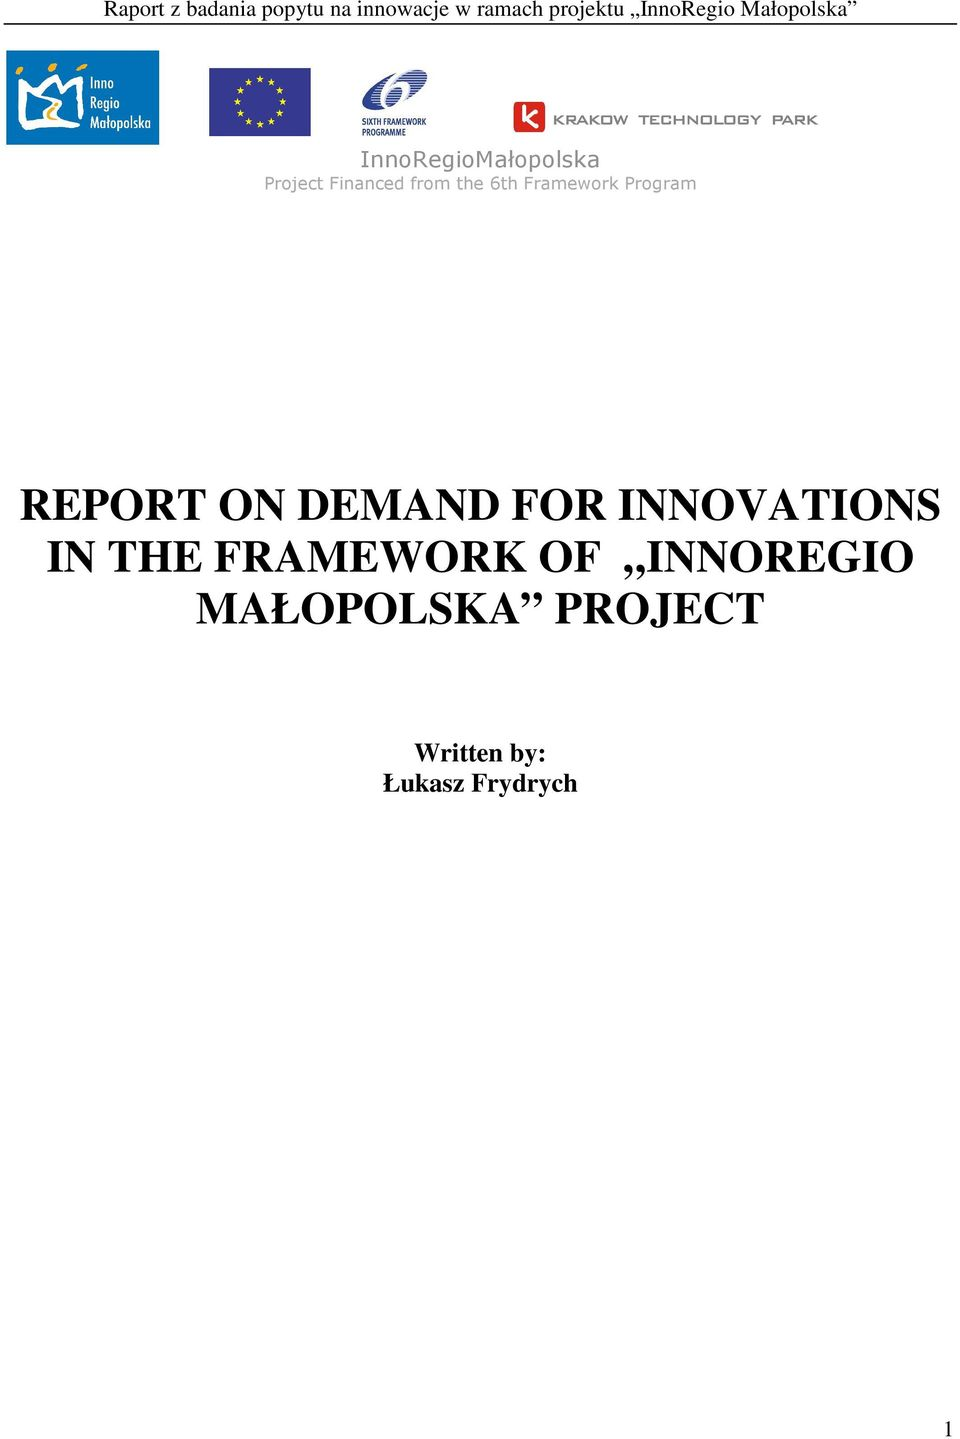 FOR INNOVATIONS IN THE FRAMEWORK OF